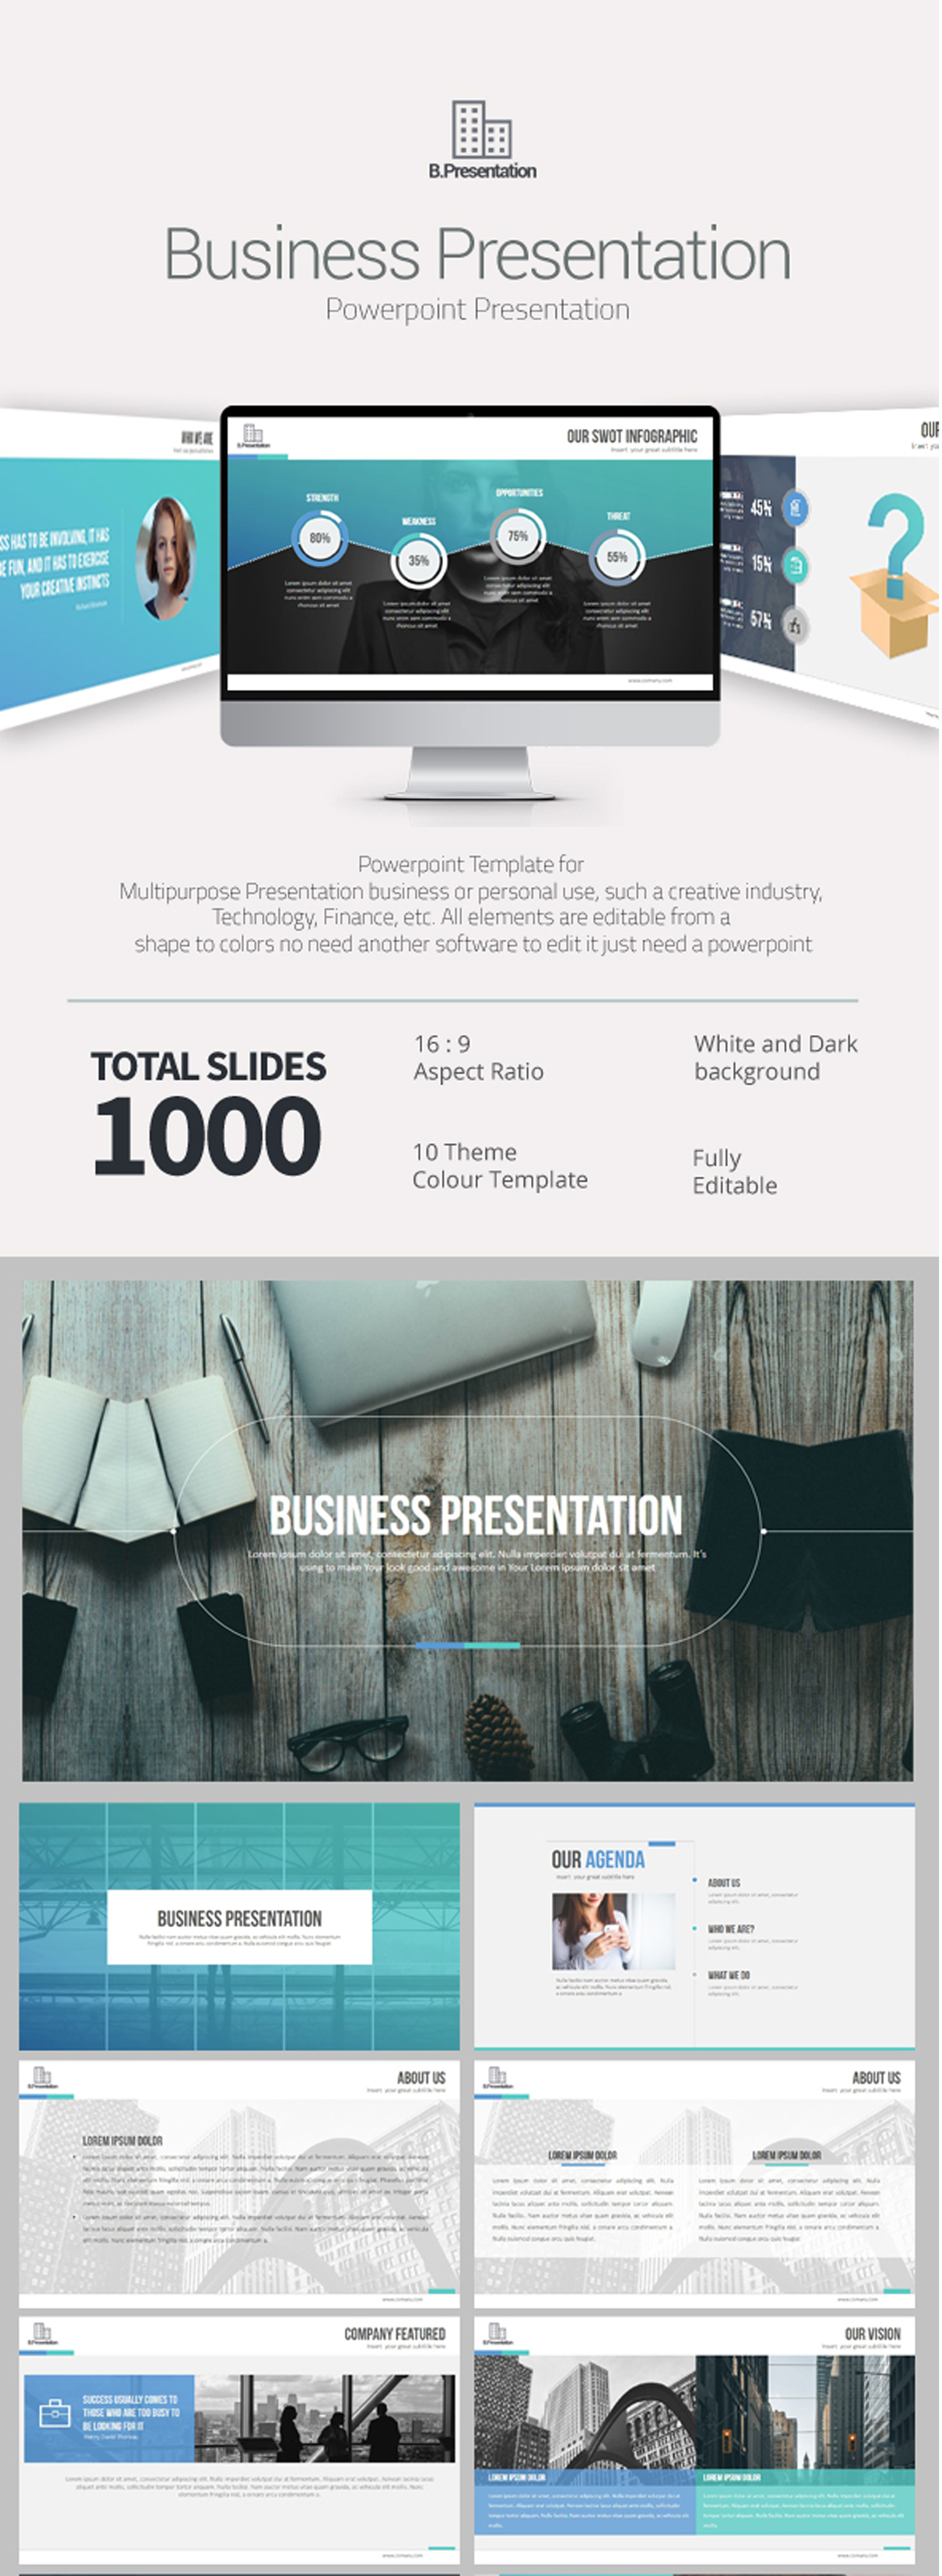 Business Presentation Templates For Multipurpose Presentation Business Or  Personal Use, Such A Creative ,finance.All Element Are Editable From A  Shape To ...